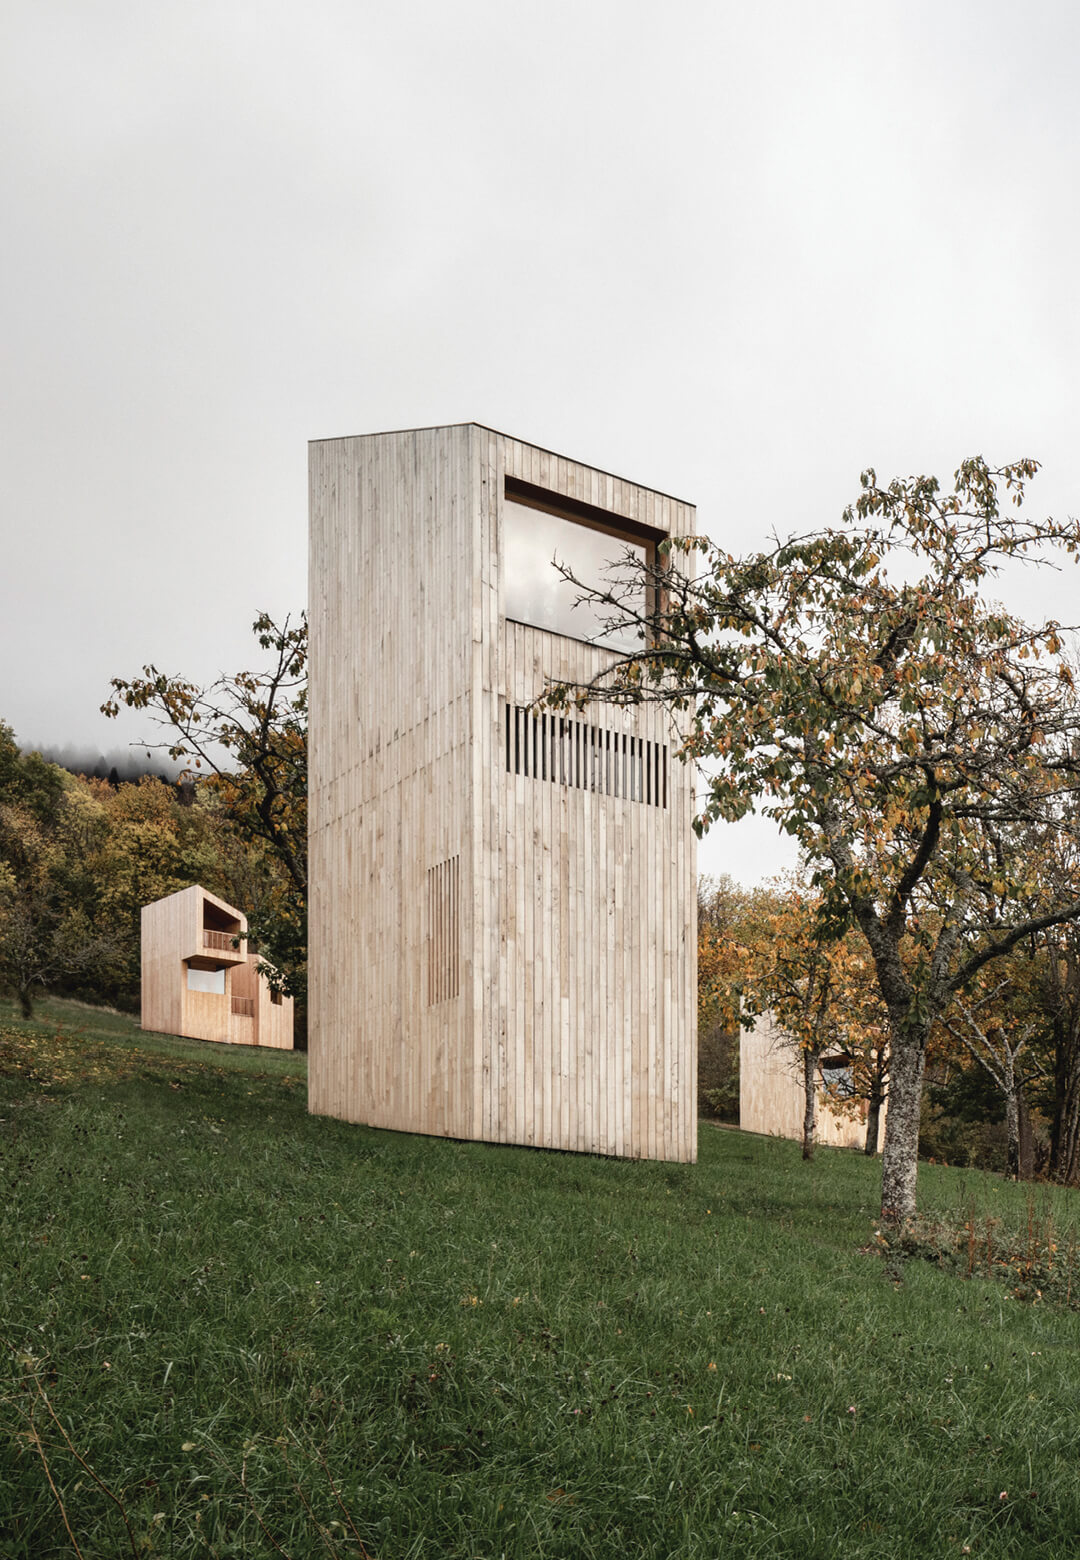 The Breitenbach Landscape Hotel: 48° Nord by Reiulf Ramstad Architects consists of 14 Scandinavian cabins spread across a lush site | Breitenbach Landscape Hotel: 48° Nord | Reiulf Ramstad Architects | STIRworld